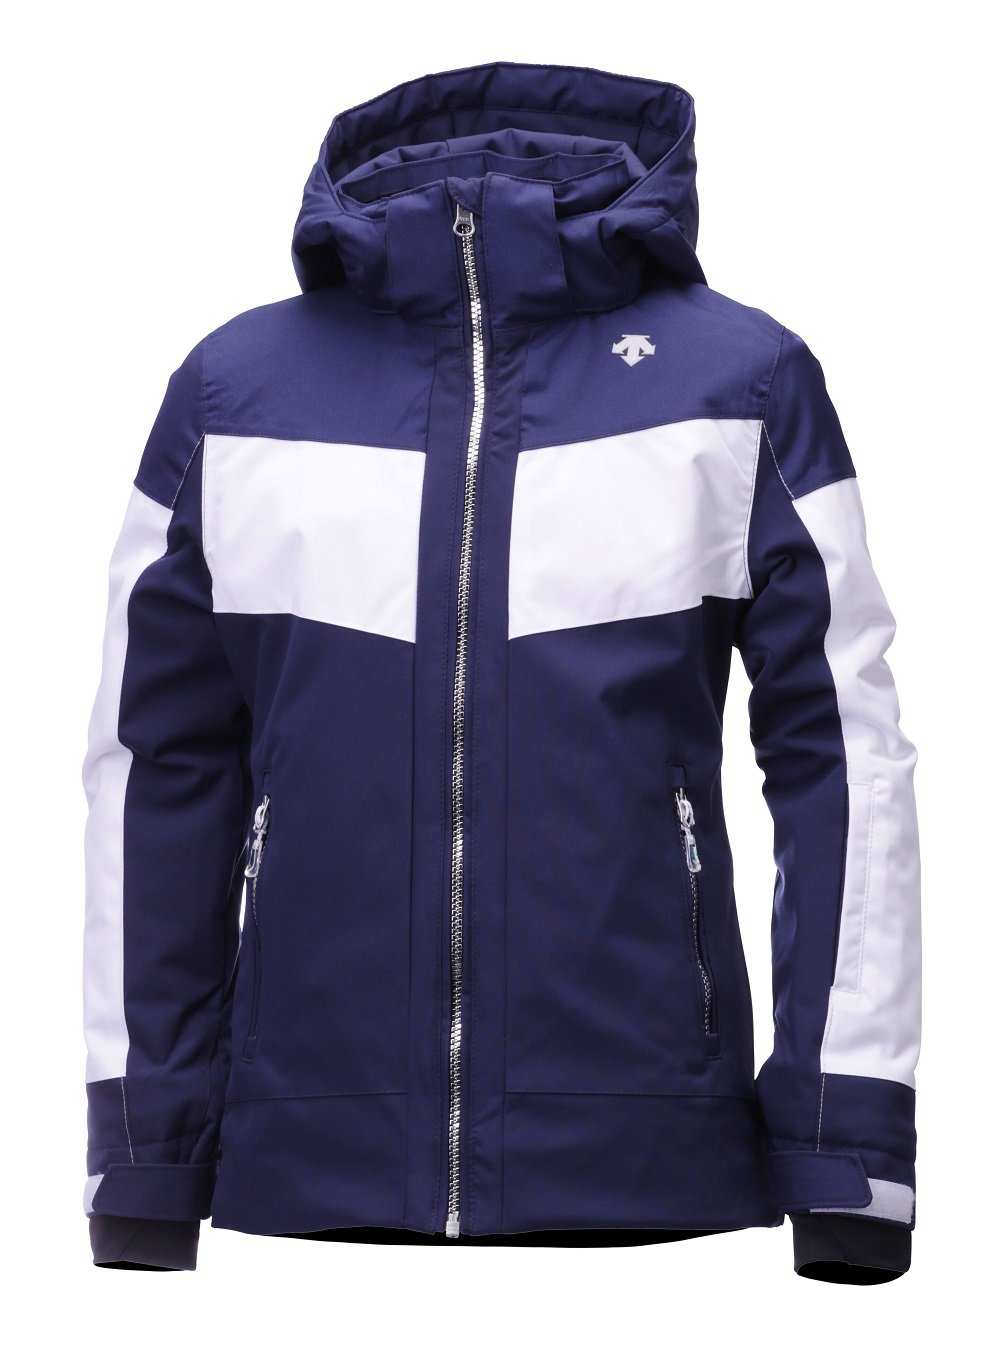 DESCENTE KIDS JACKET HARLEY